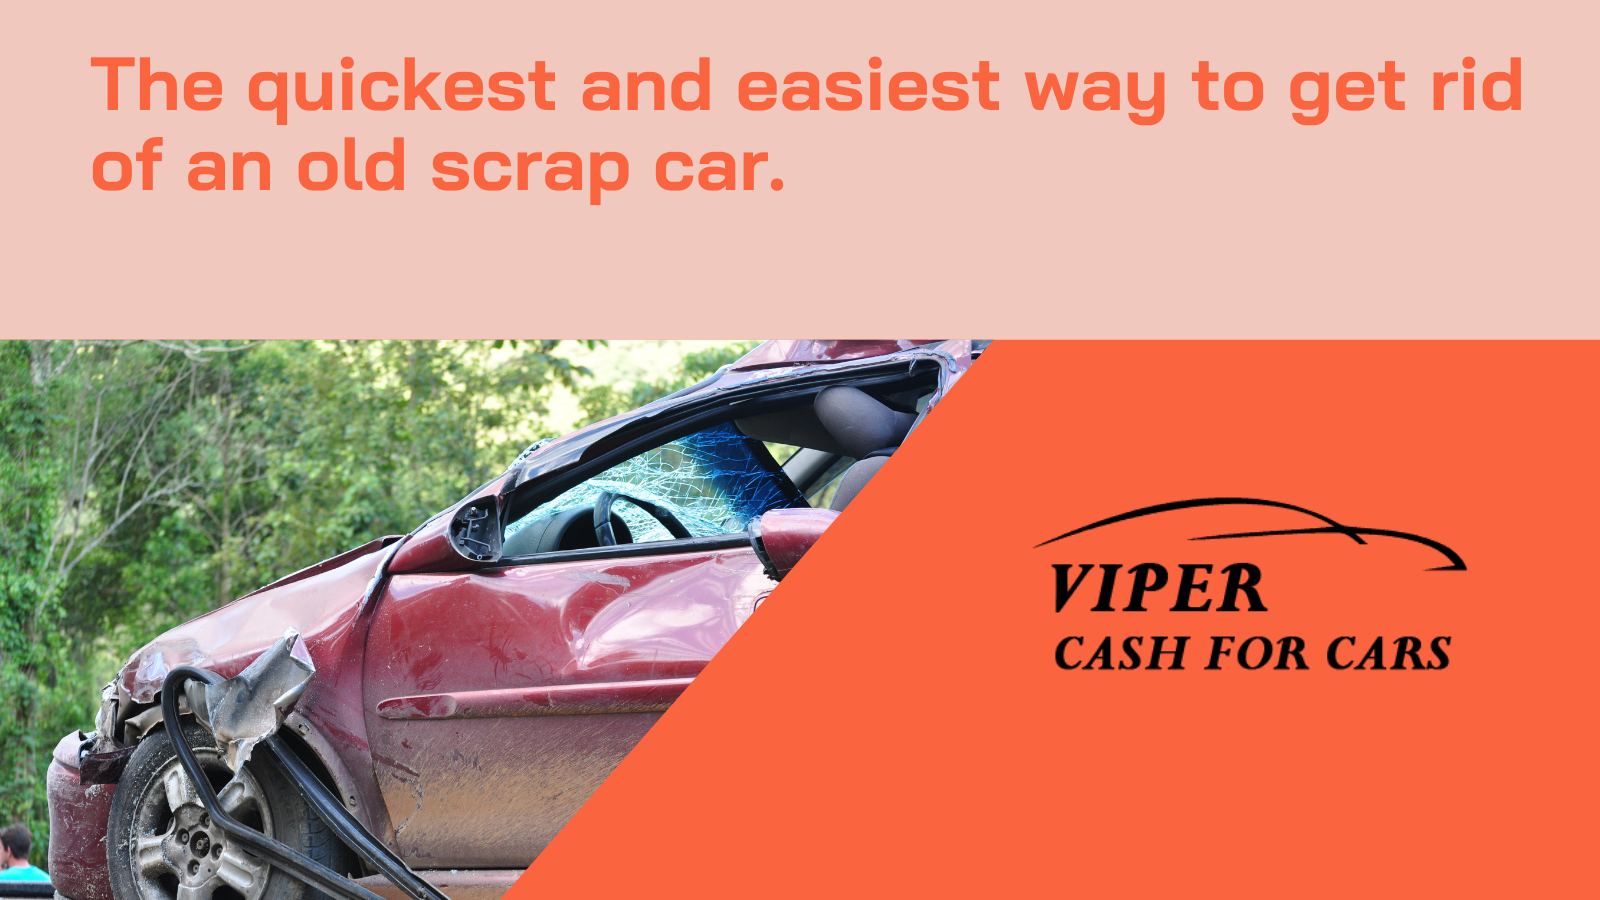 The quickest and easiest way to get rid of an old scrap car.